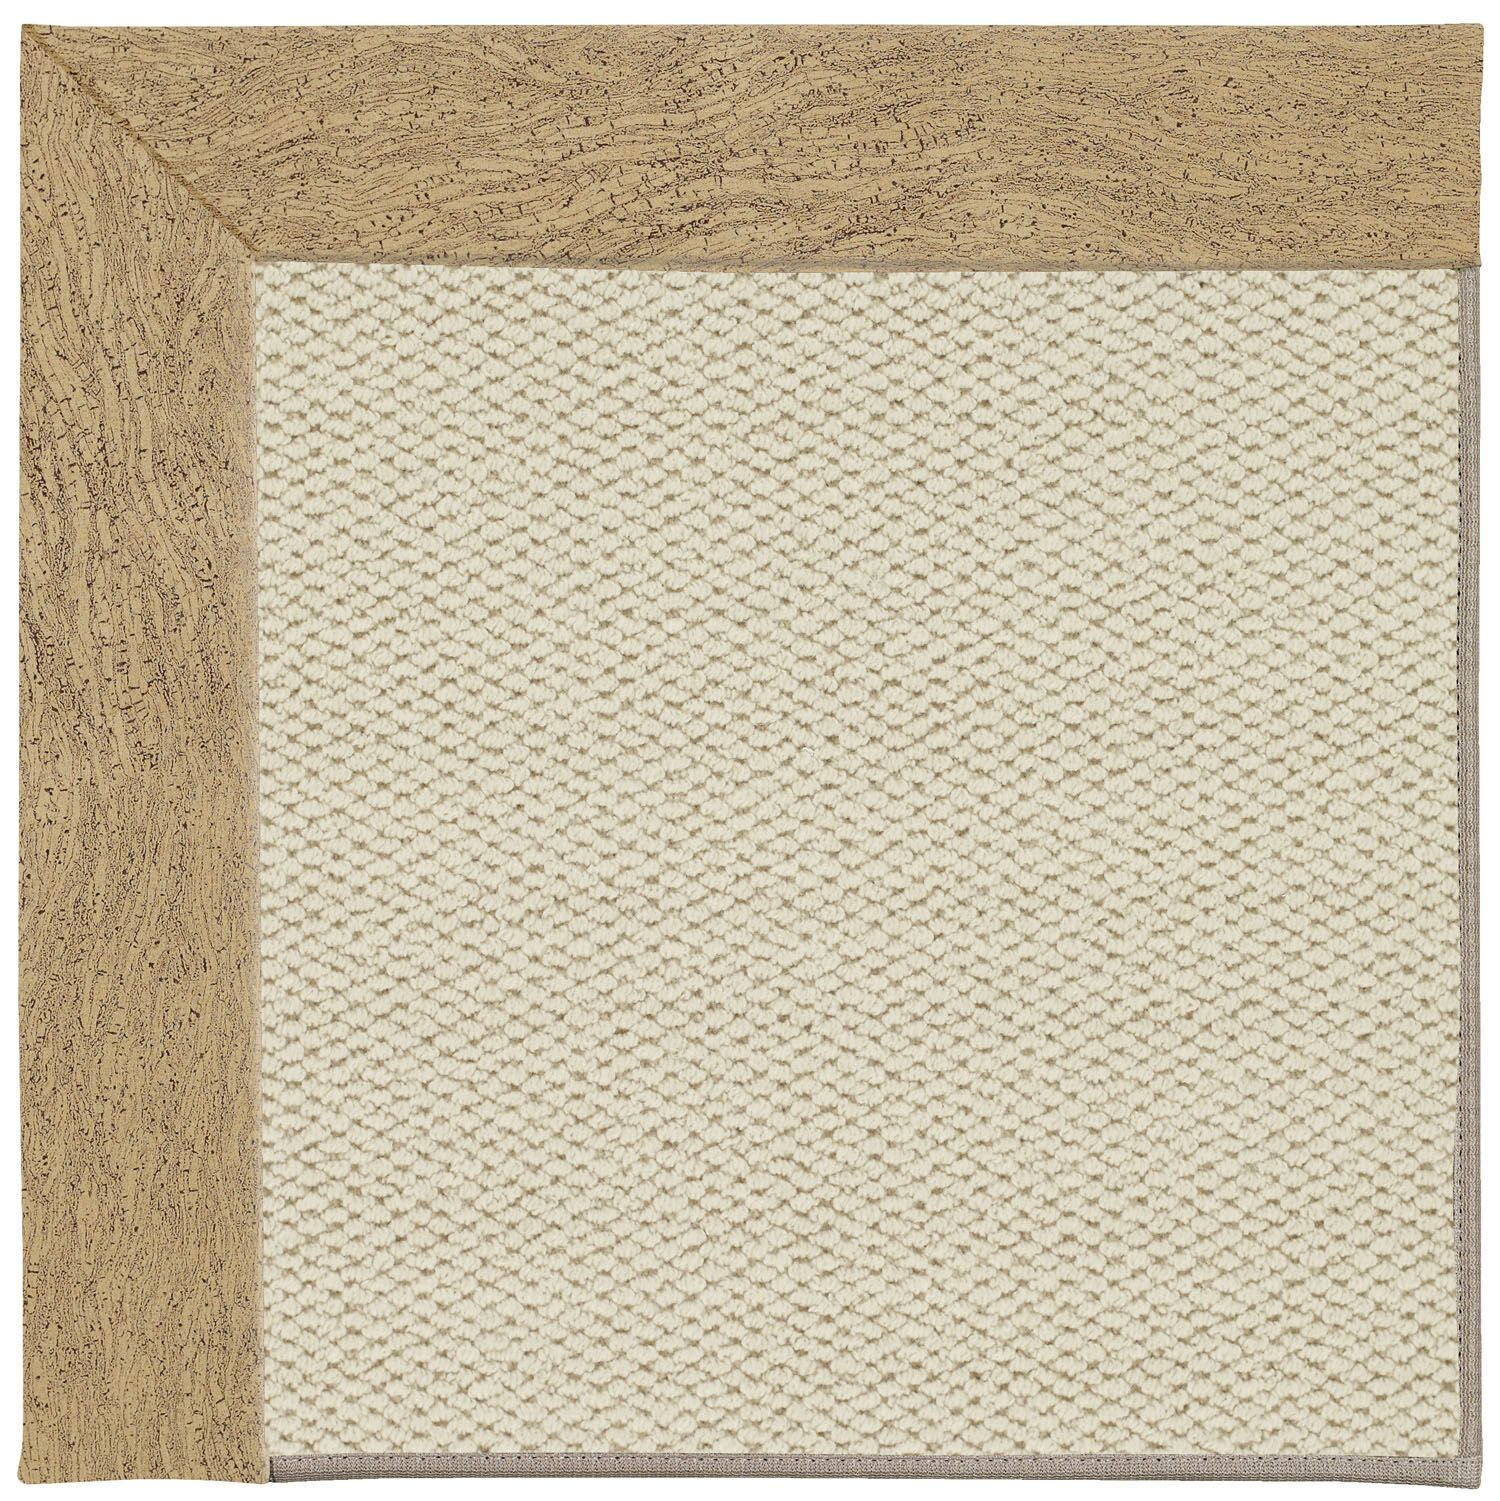 Barrett Linen Machine Tufted Beige Area Rug Rug Size: Rectangle 3' x 5'